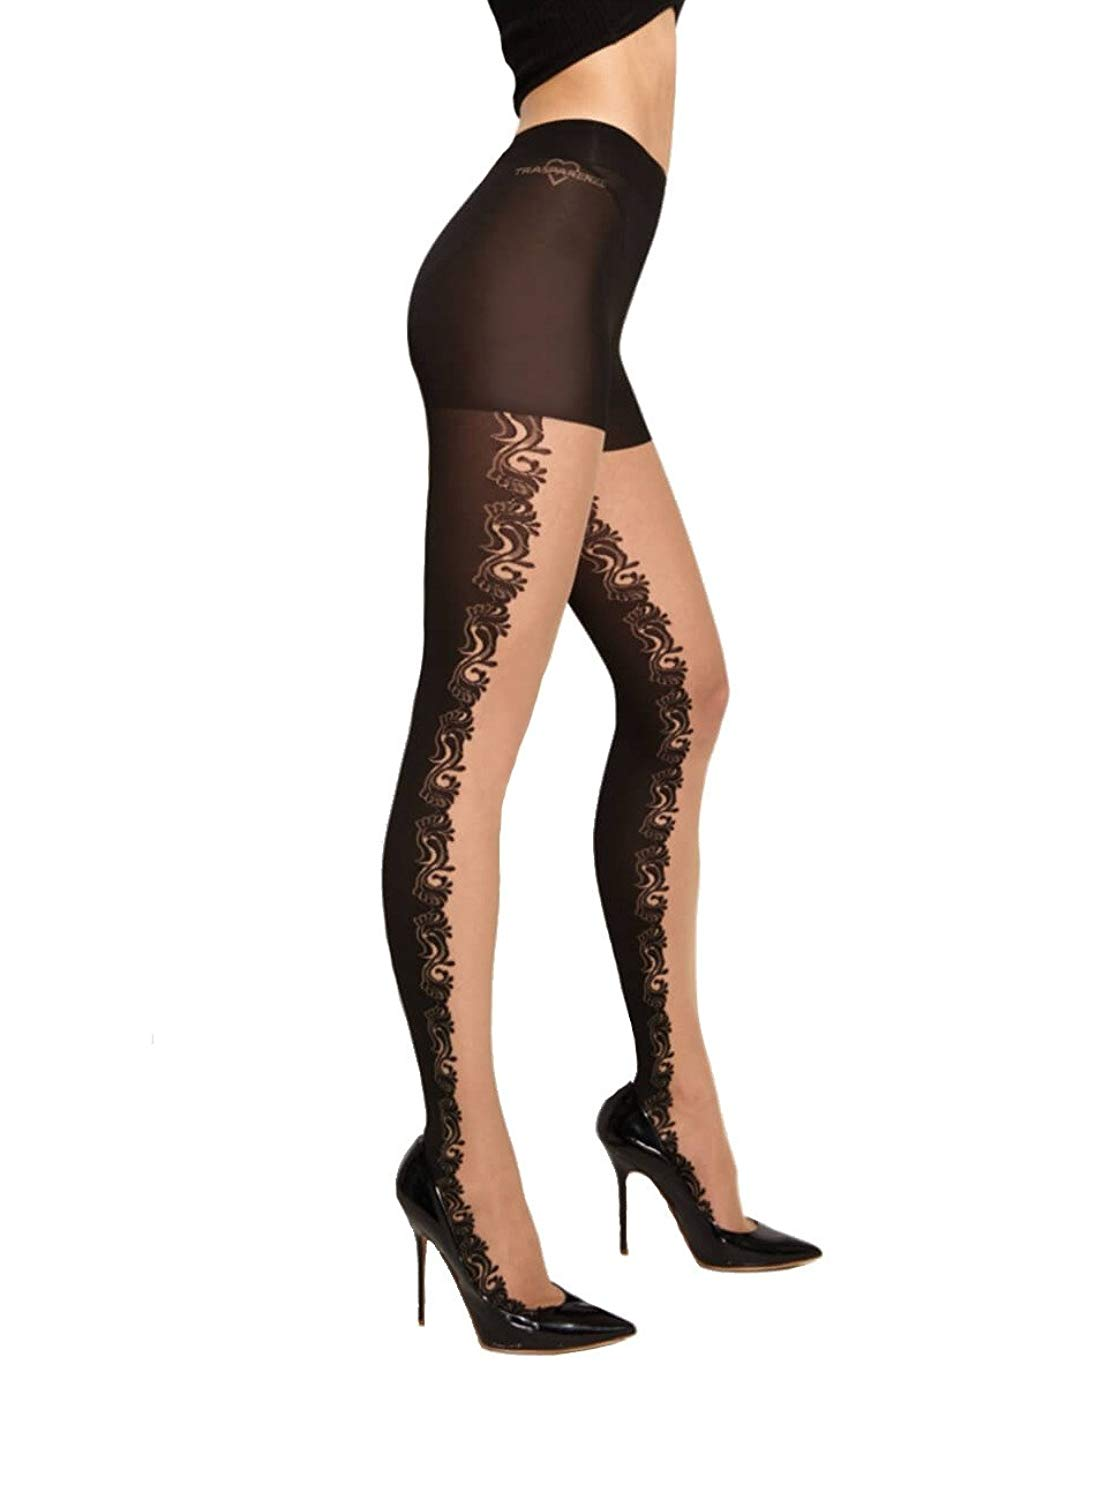 7f0001491db Get Quotations · Trasparenze Fellini Tights - Hosiery Outlet